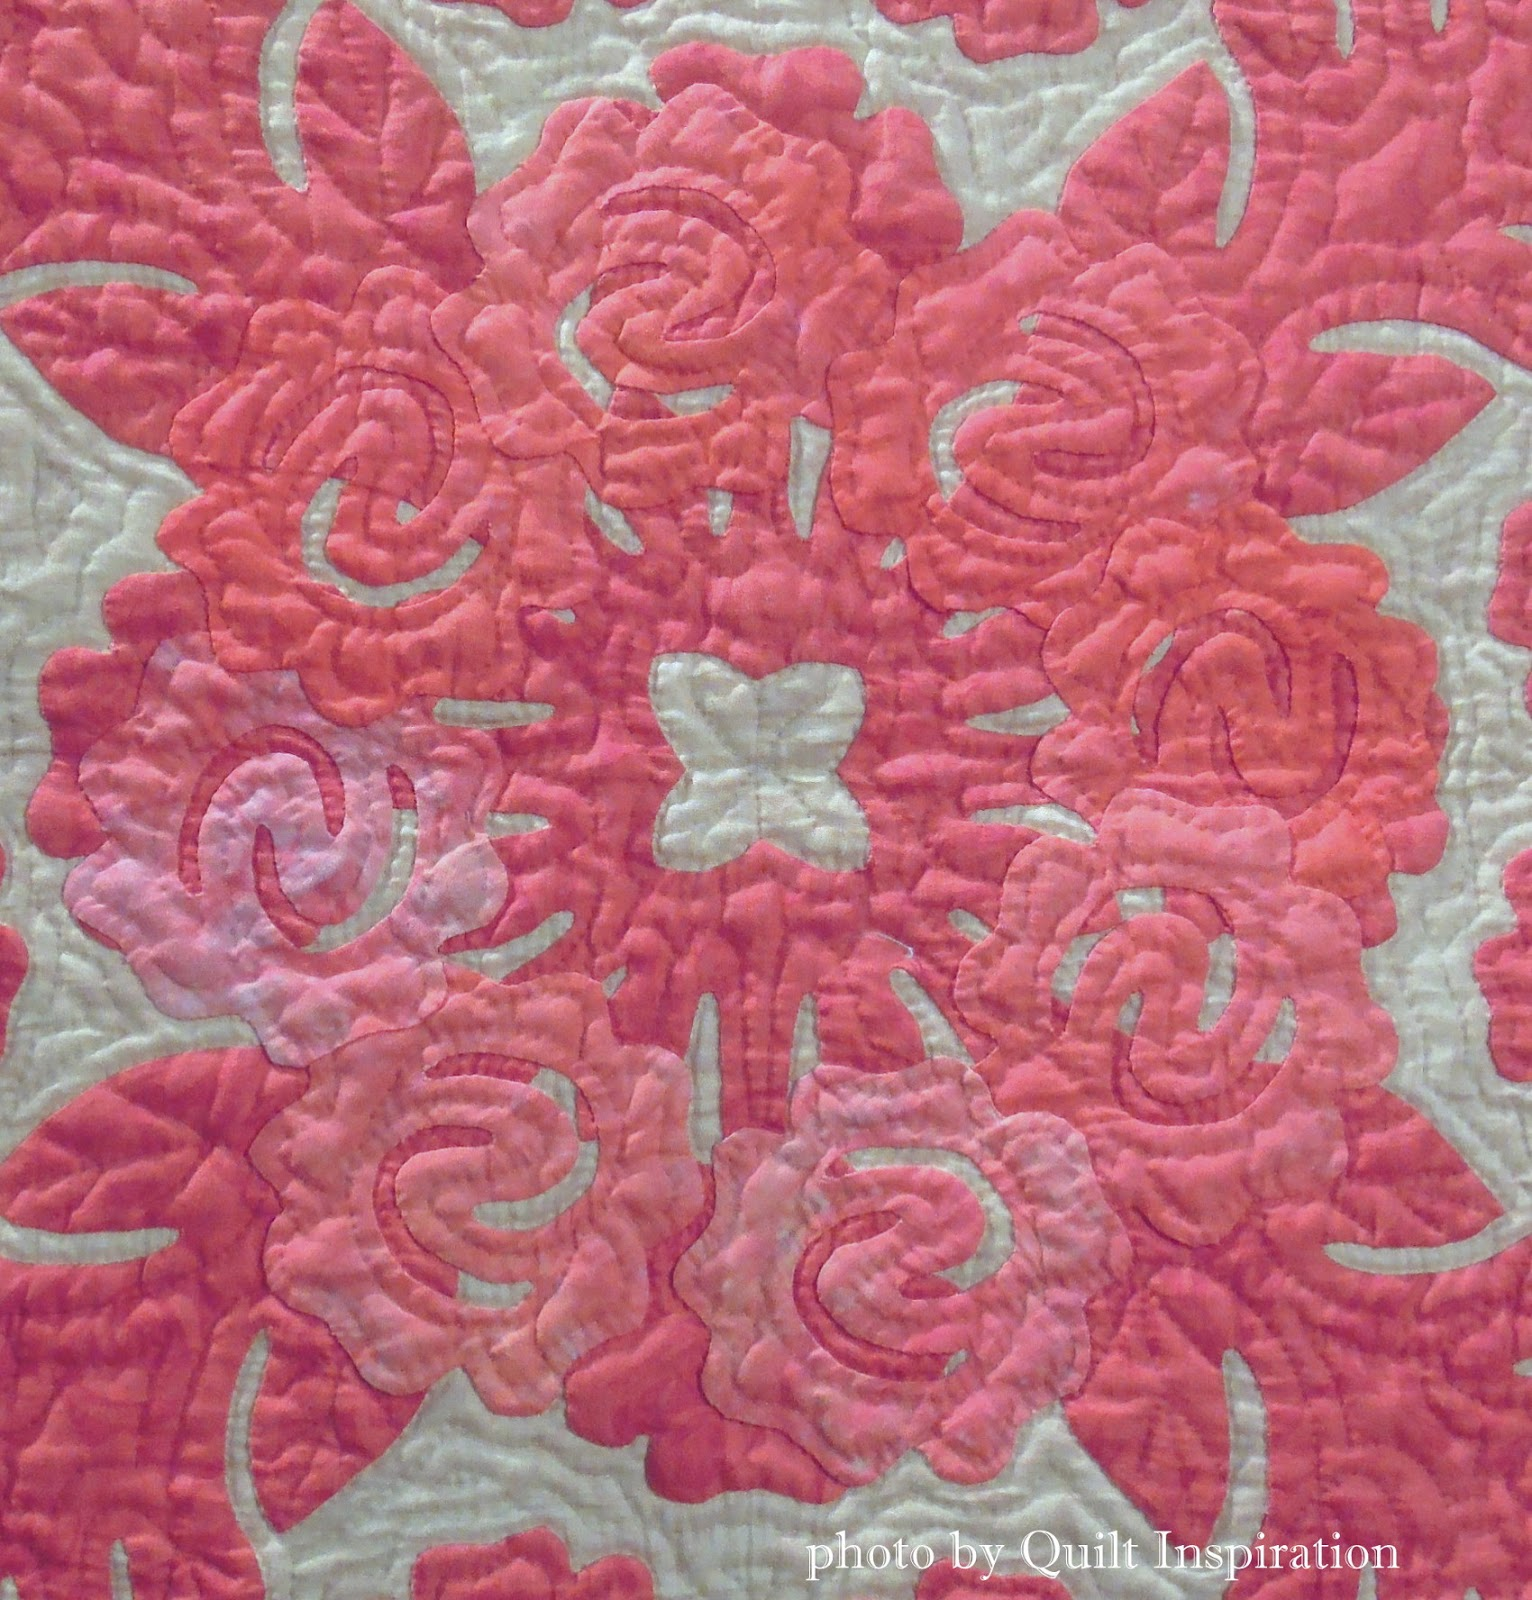 Quilt Inspiration: Hawaiian quilts by Japanese masters